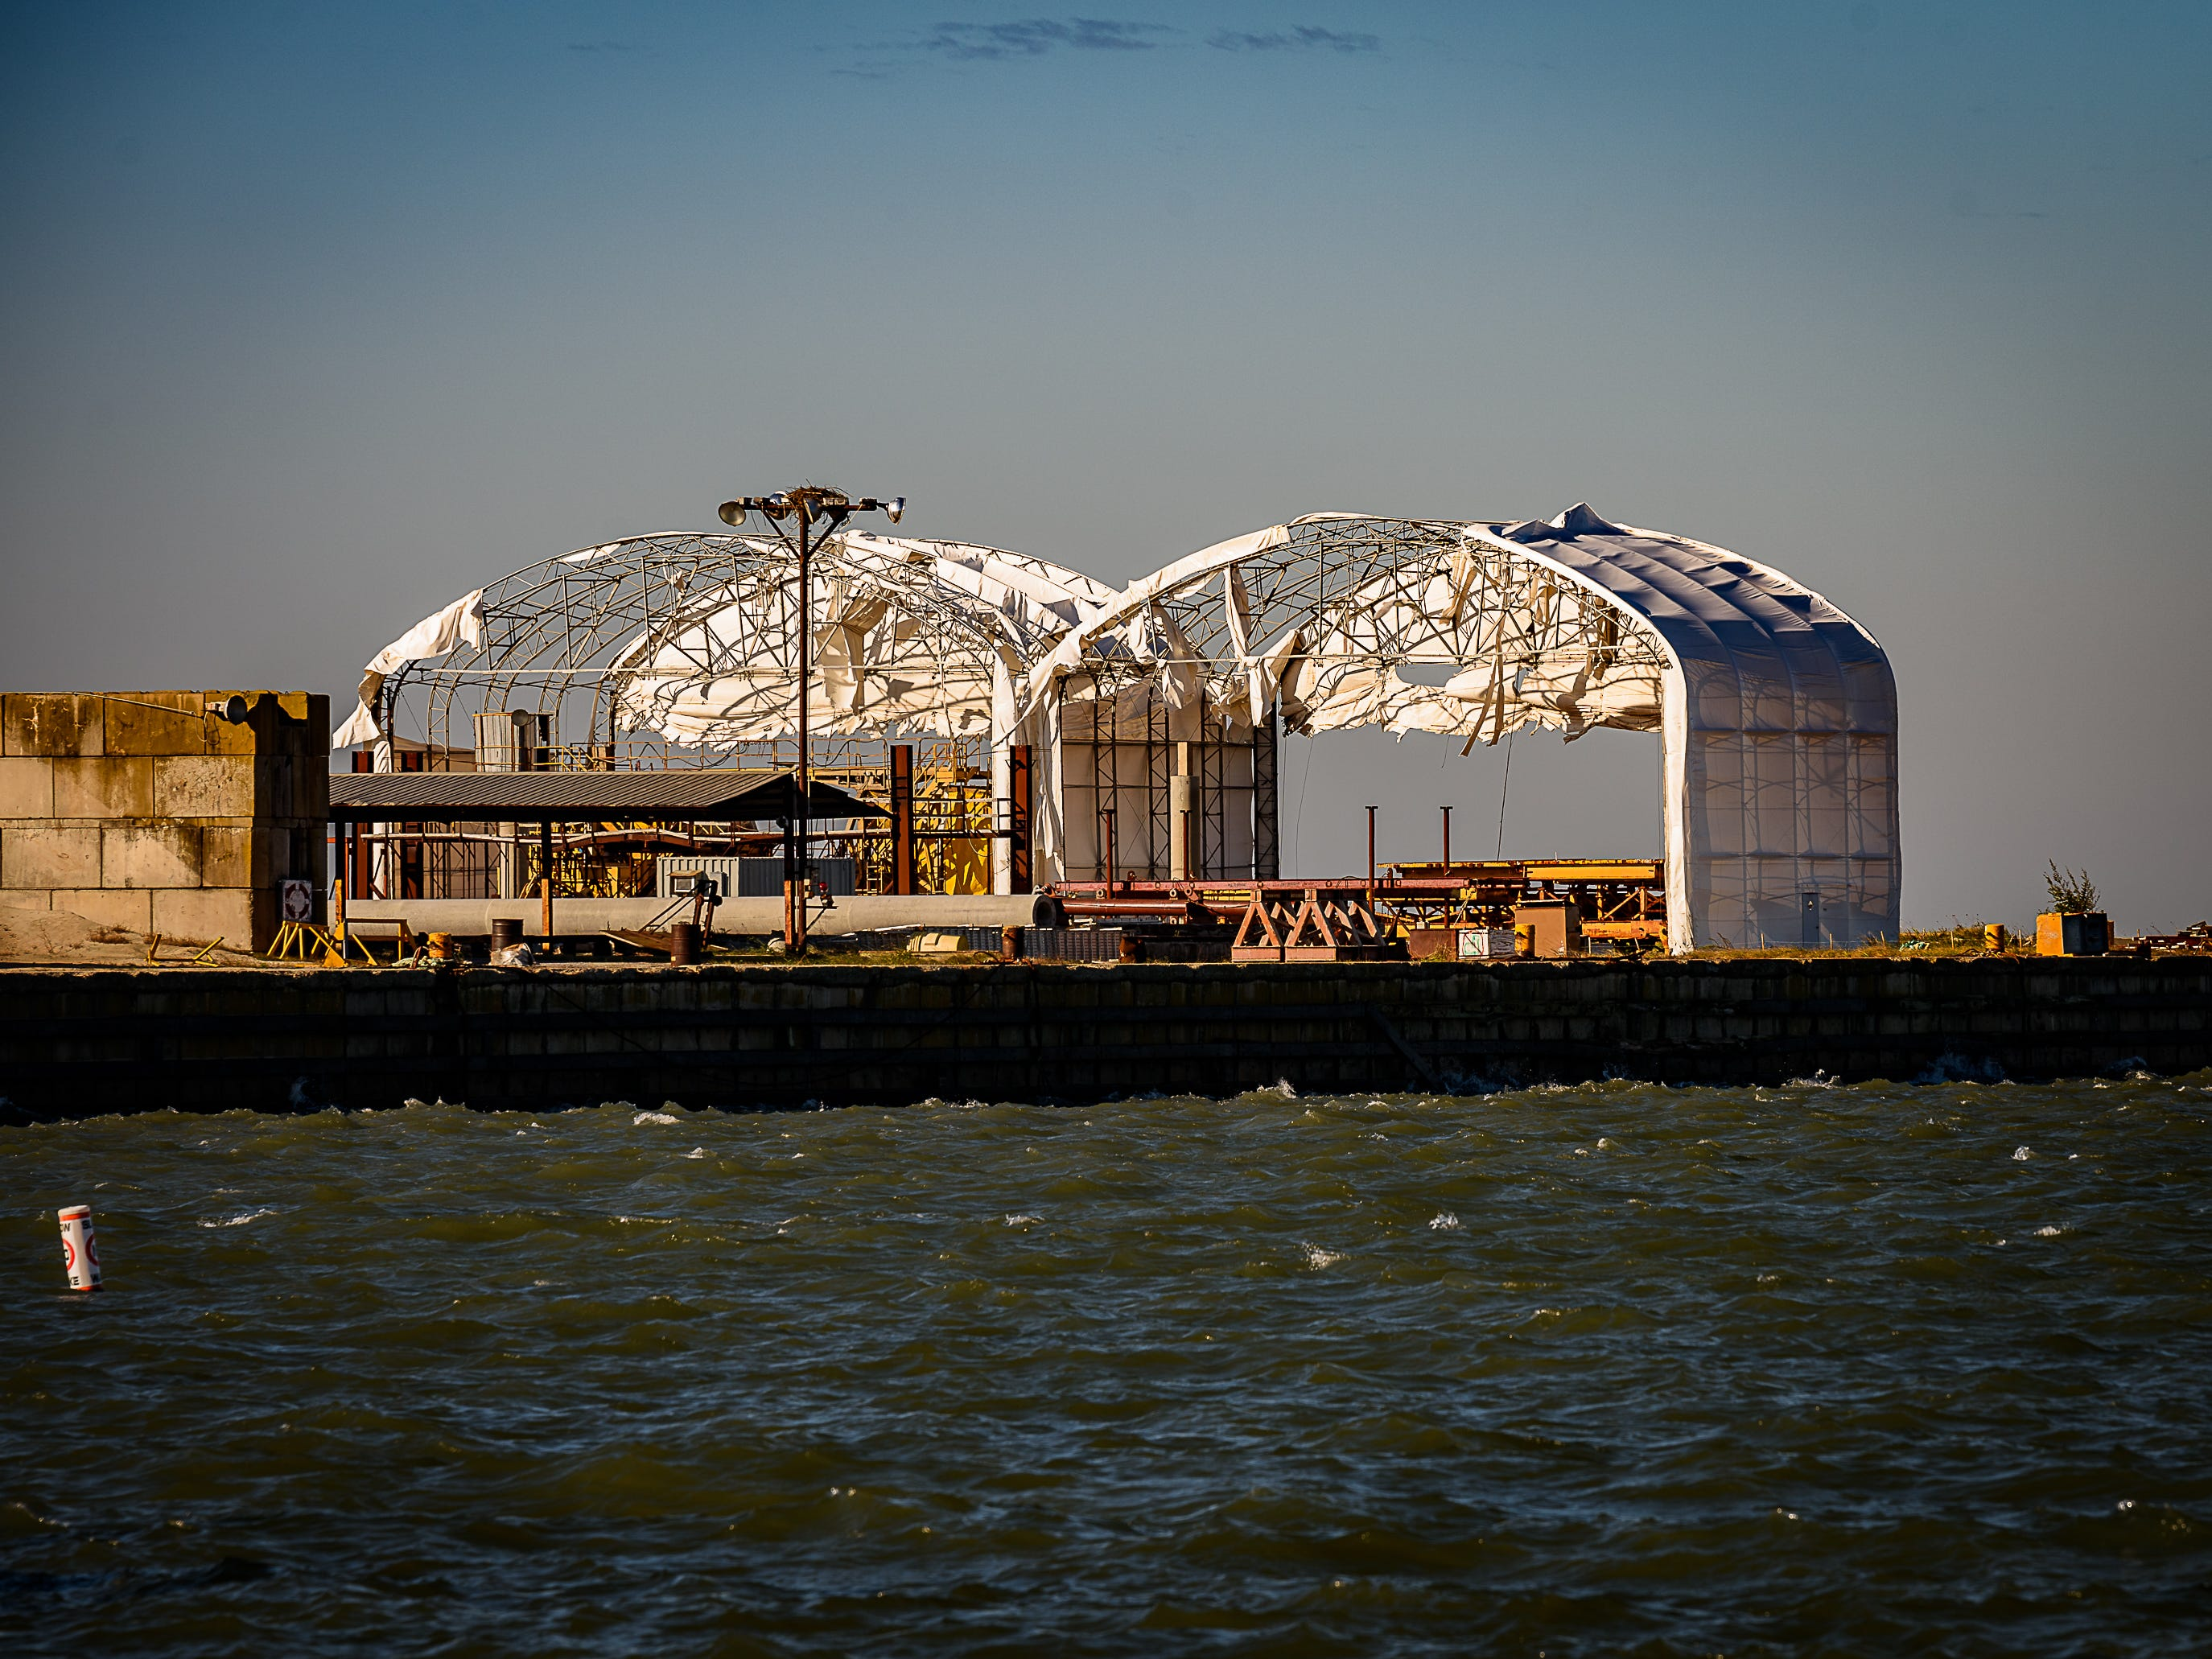 Buildings at the former Bayshore Concrete Plant had their plastic rooofs shredded during a recent storm in the Eastern Shore of Virginia.